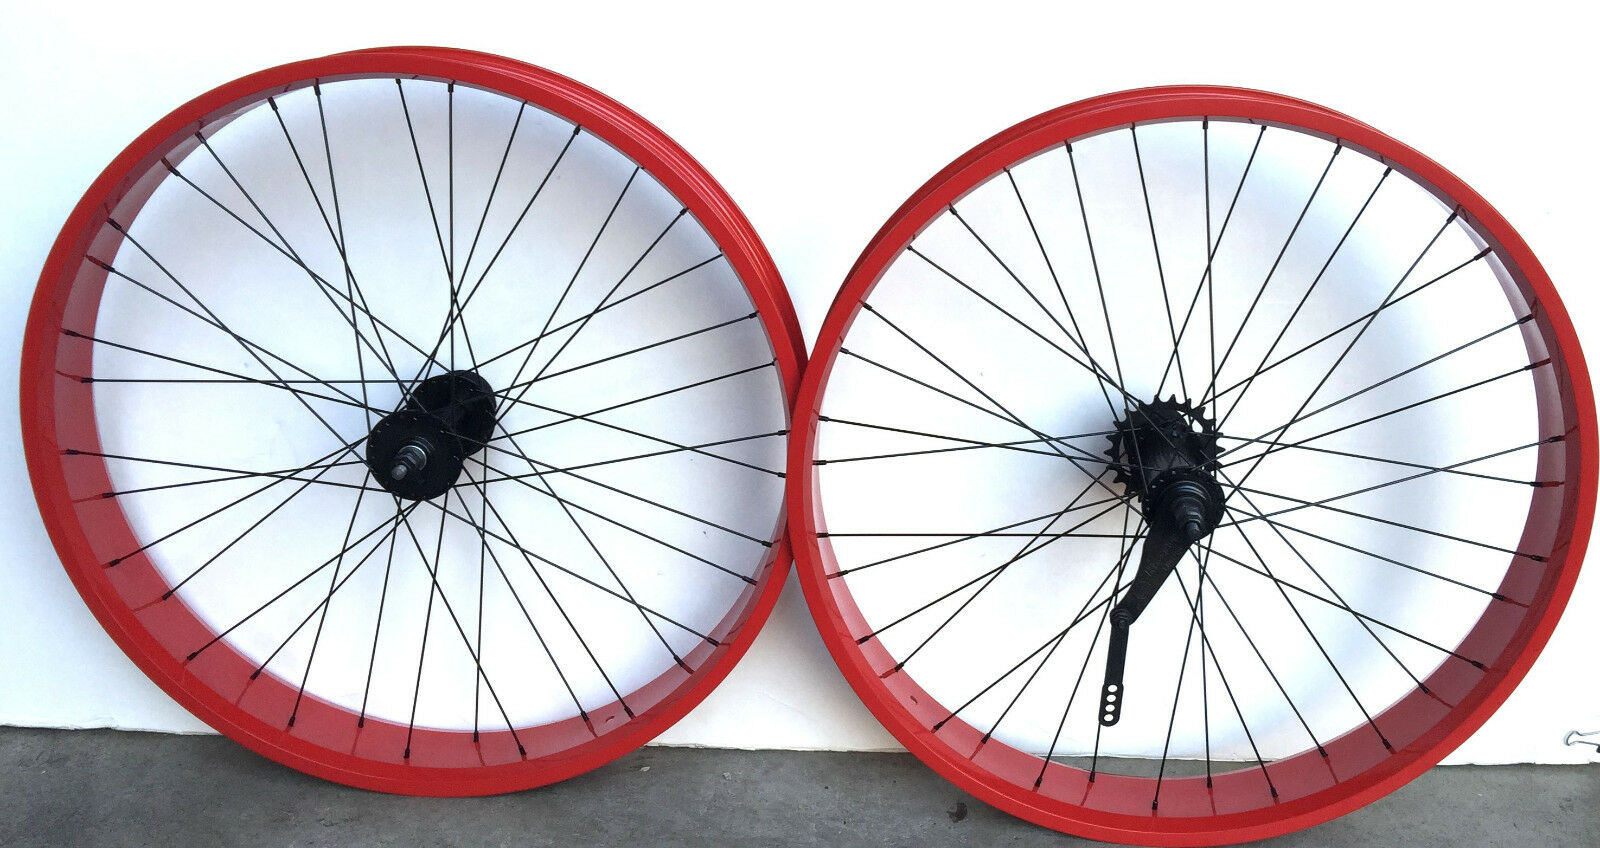 Micargi Fat Cruiser 26  x 4.0 Rear & Front Wheels 36 Spokes Coaster brake Red